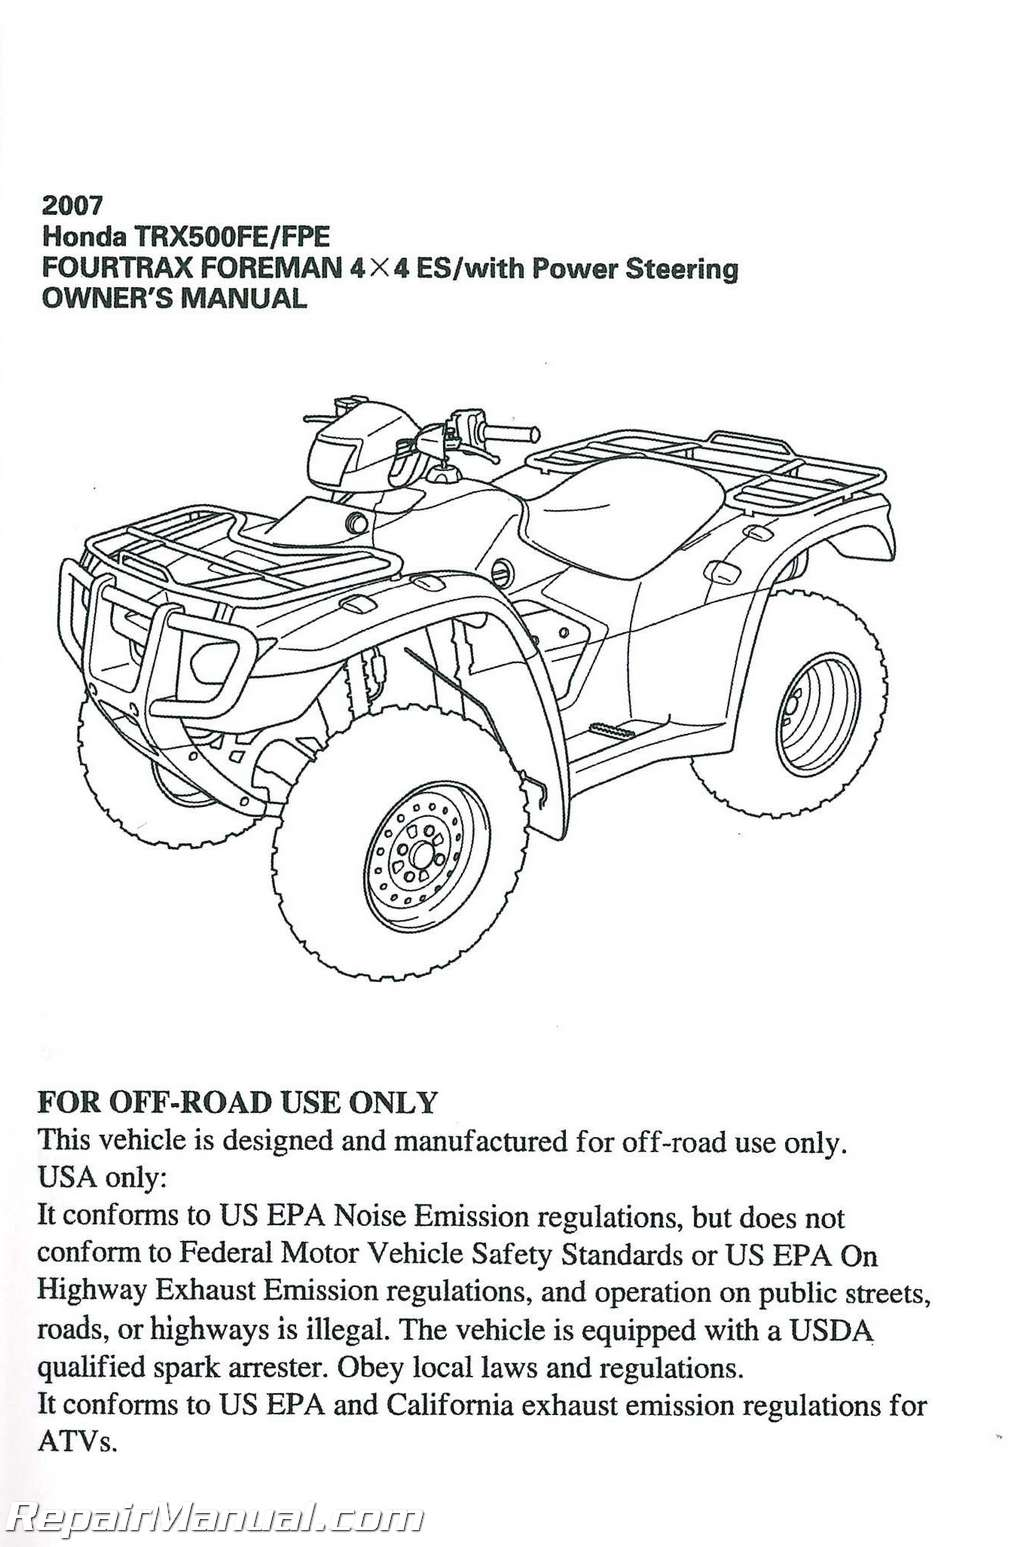 2002 honda 4x4 atv online manual